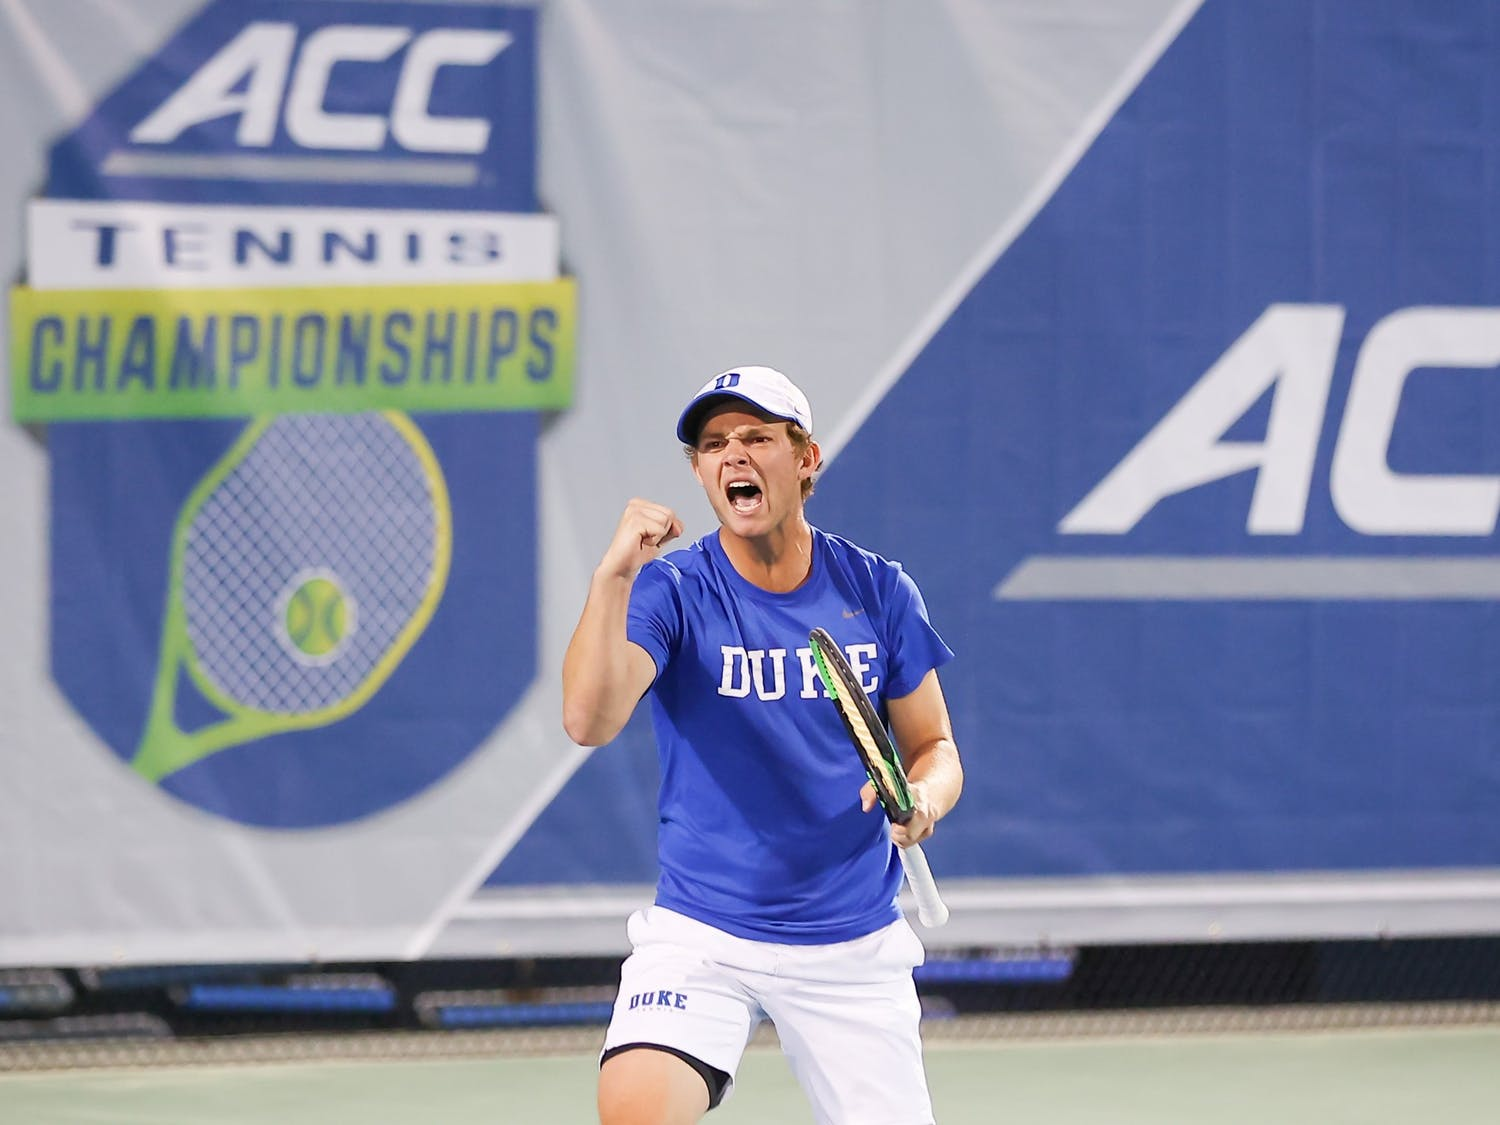 Despite the Blue Devils' loss to the Demon Deacons Saturday, players such as freshman Andrew Dale showed promise.